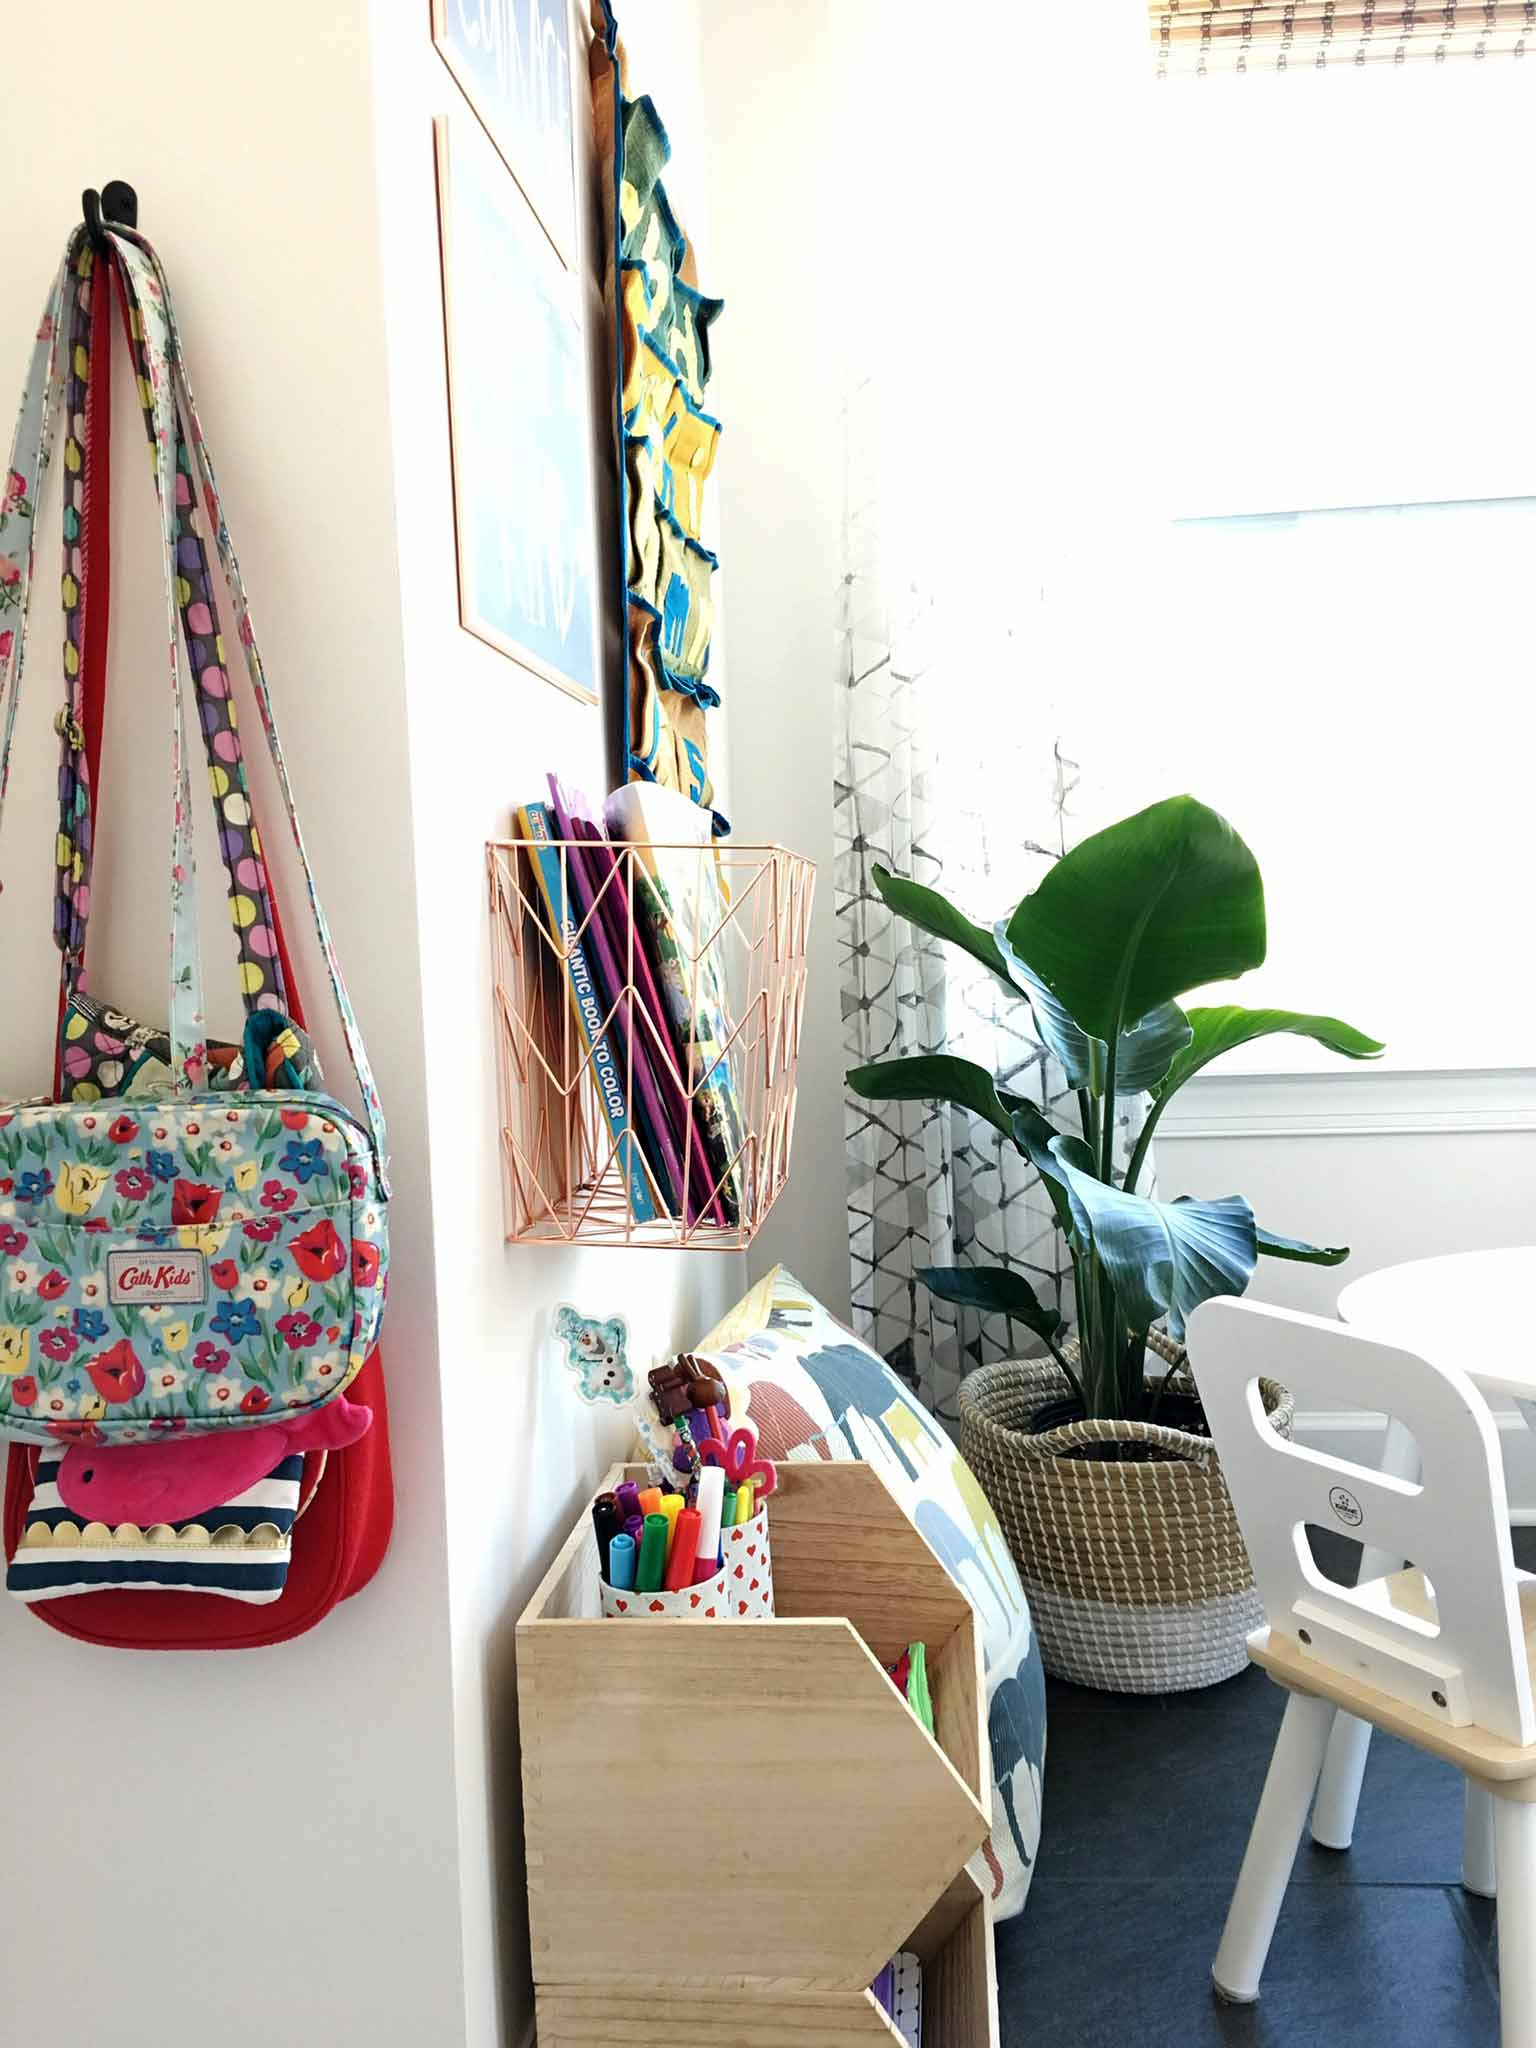 Kids art and craft storage - playroom house tour - That Homebird Life Blog